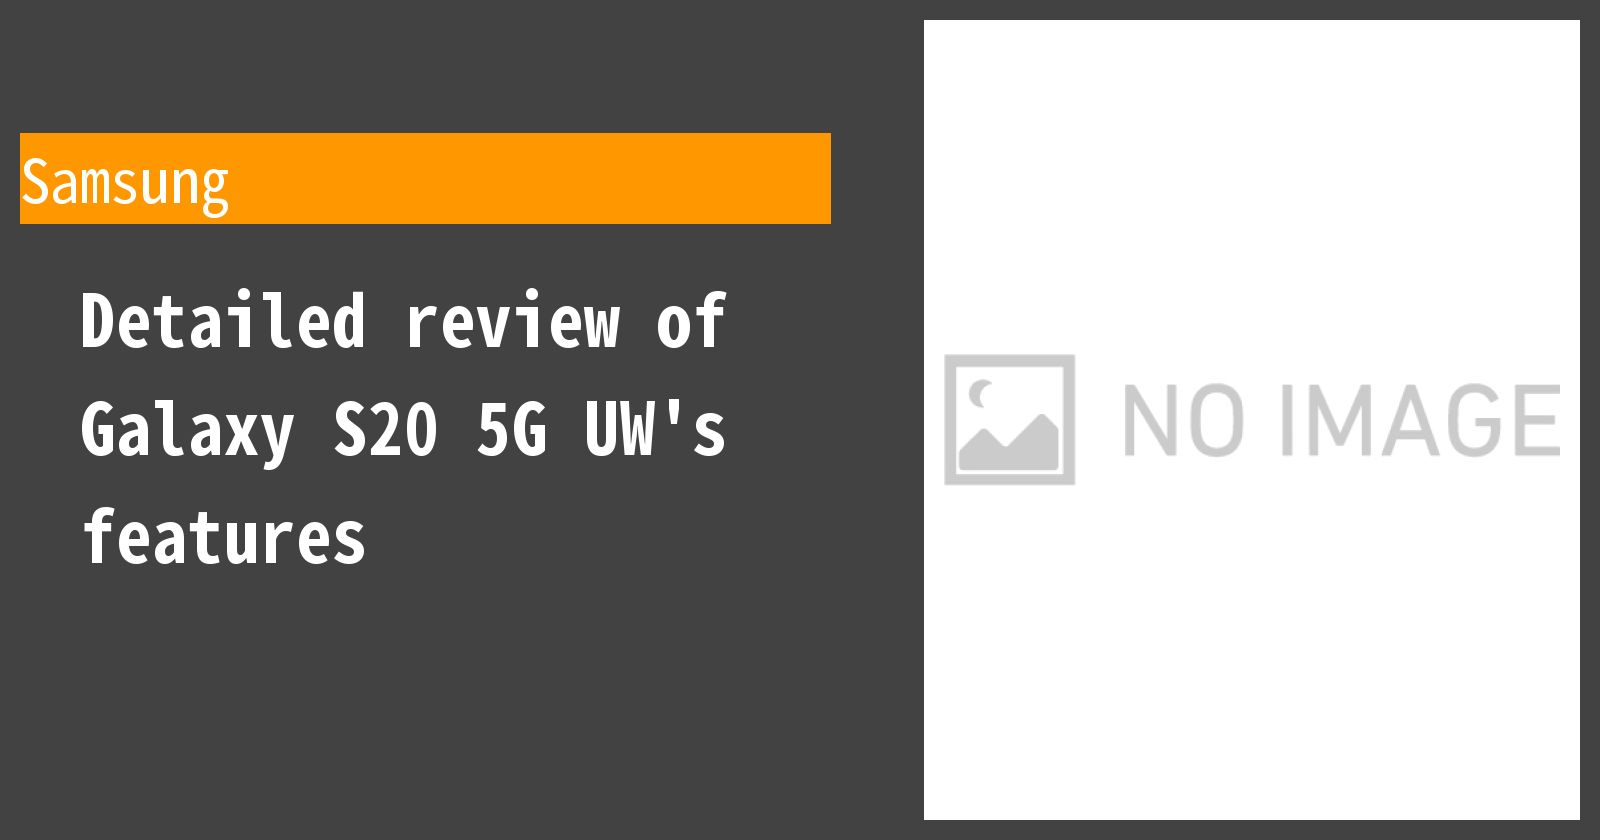 Detailed review of Galaxy S20 5G UW's features